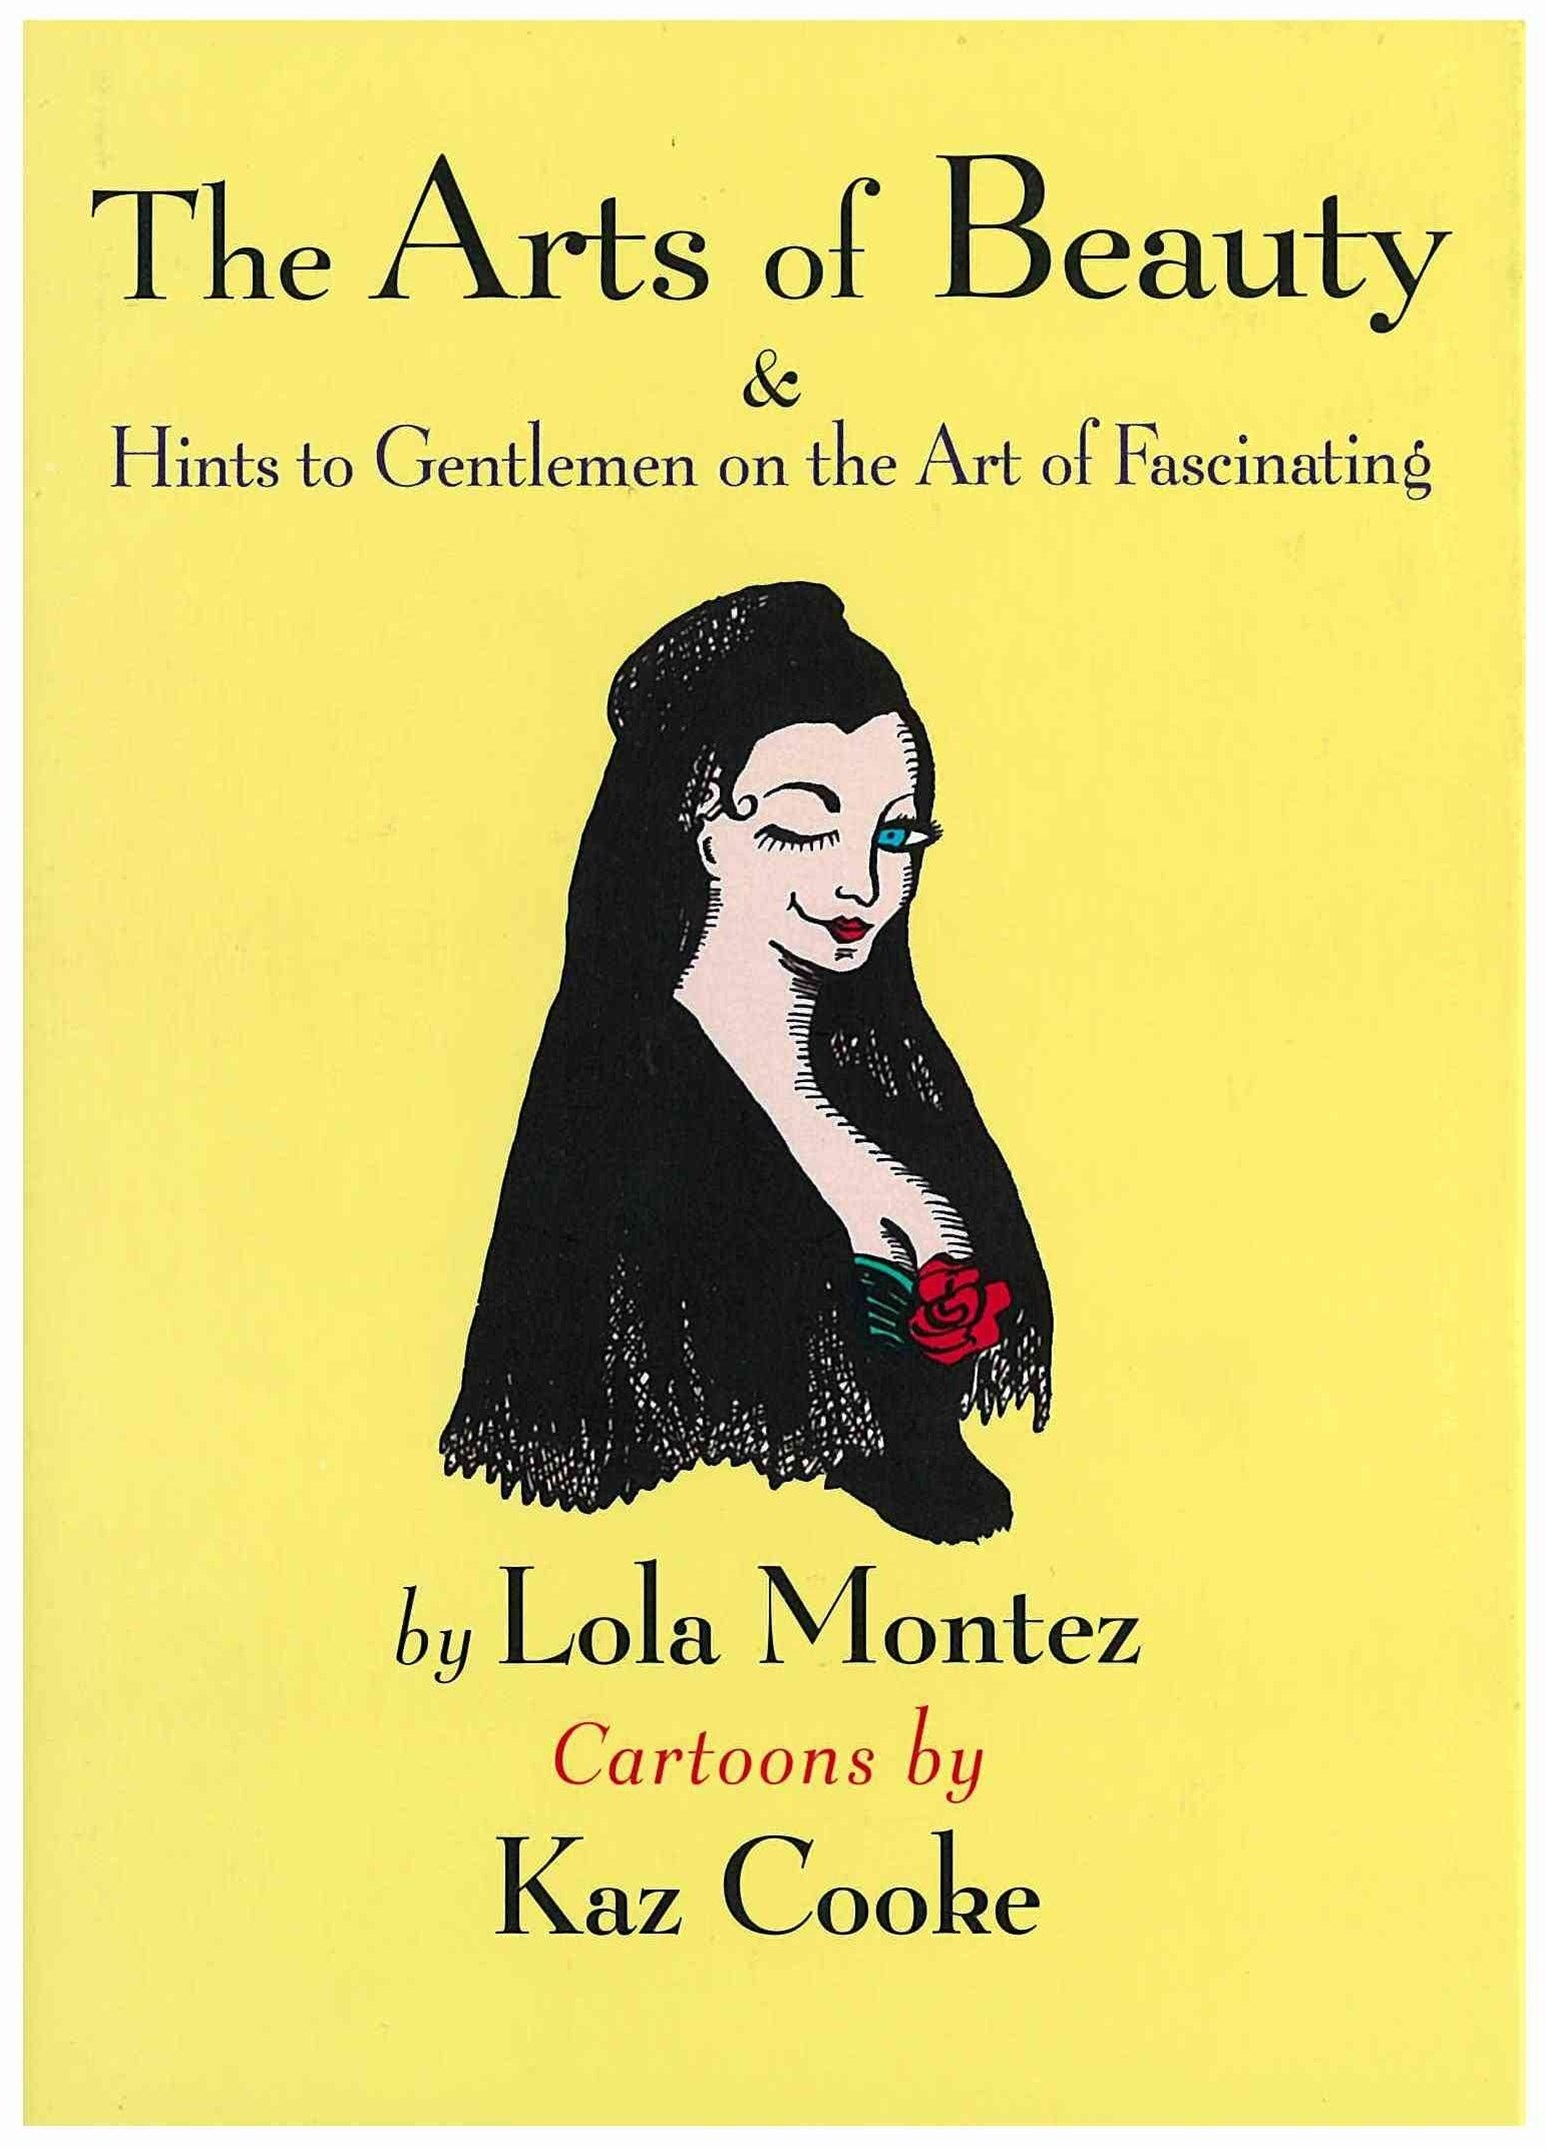 The Arts Of Beauty & Hints To Gentlemen On The Art Of Fascinating